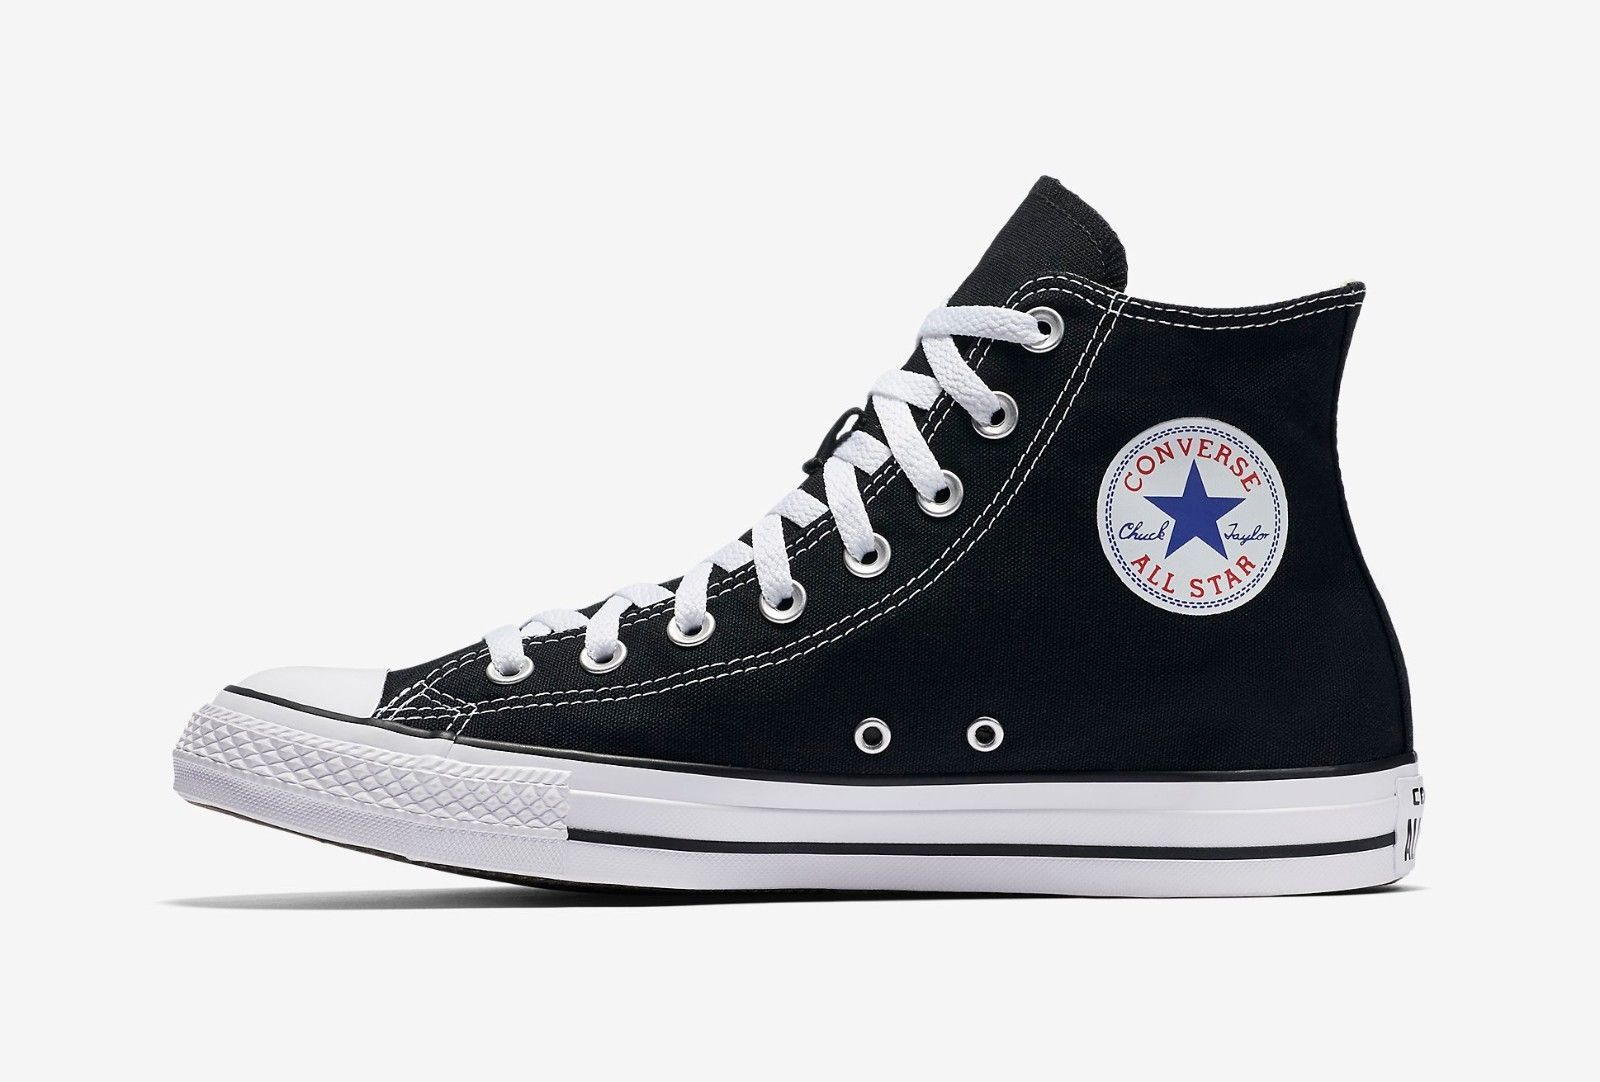 f9a8ef89f8809d Converse Chuck Taylor All Star High Top Canvas Men Shoes M9160 Black White